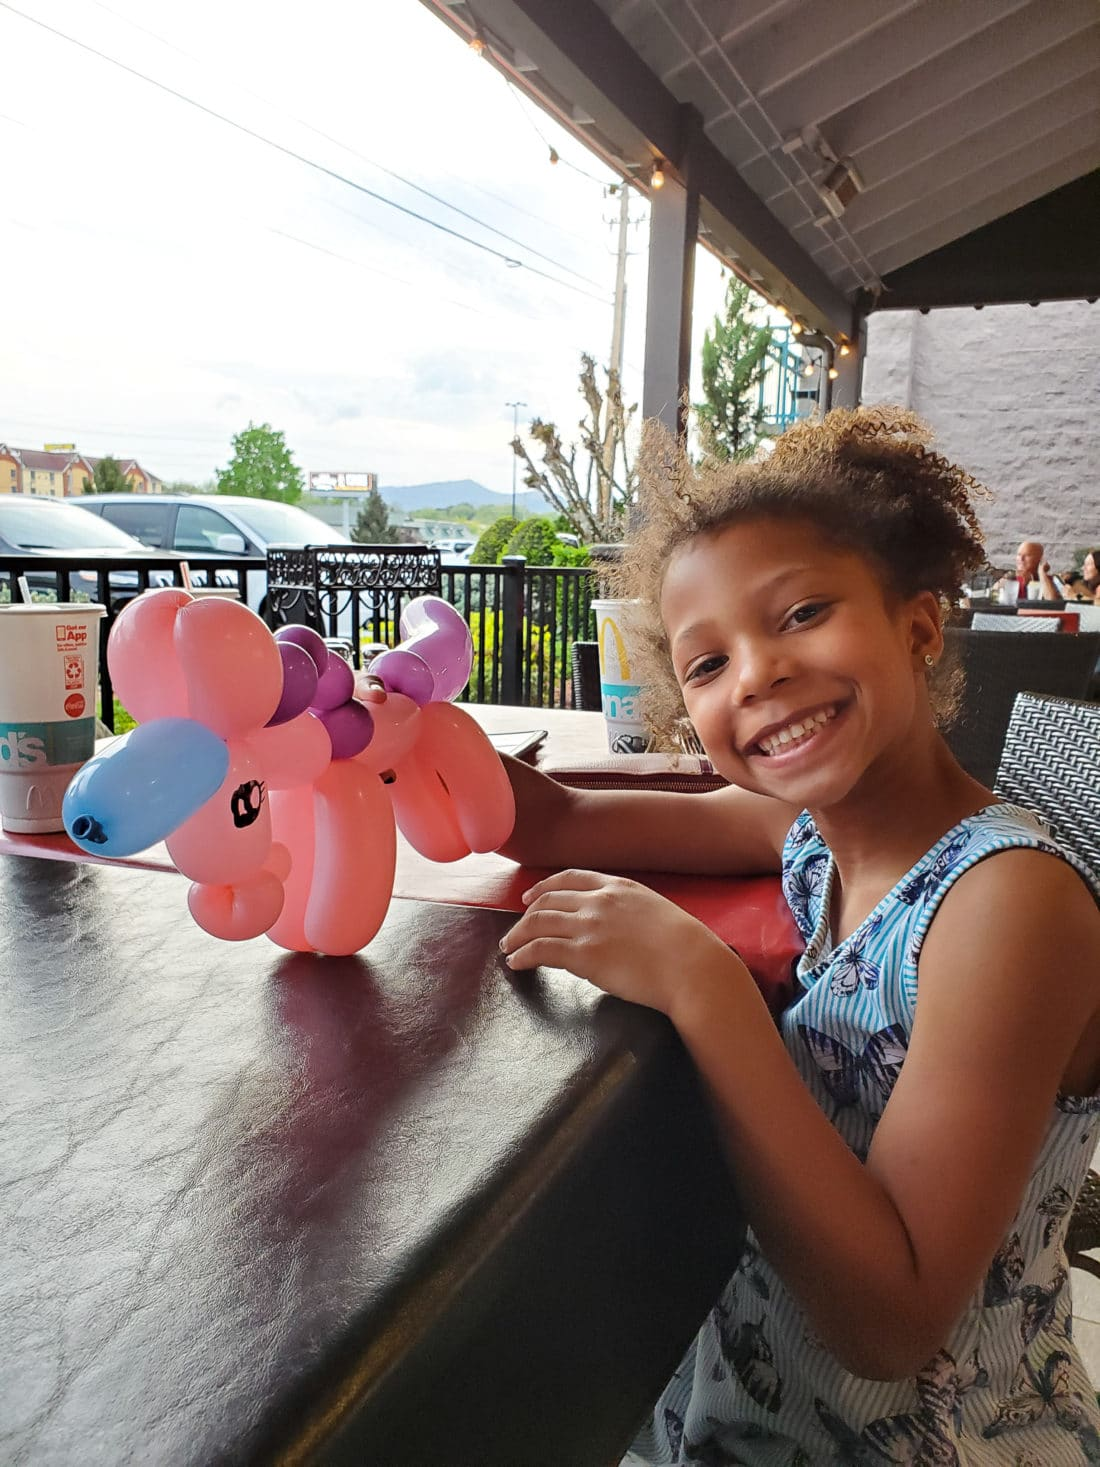 Big Daddy's Pizzeria Balloon Animals. This is not your average pizza pie! At the heart of Big Daddy's is a 550 degree, wood-fired flame inside of a one-of-a-kind brick oven. Read all about why this freshly made pizza is my families go to pizza joint in Pigeon Forge, TN.